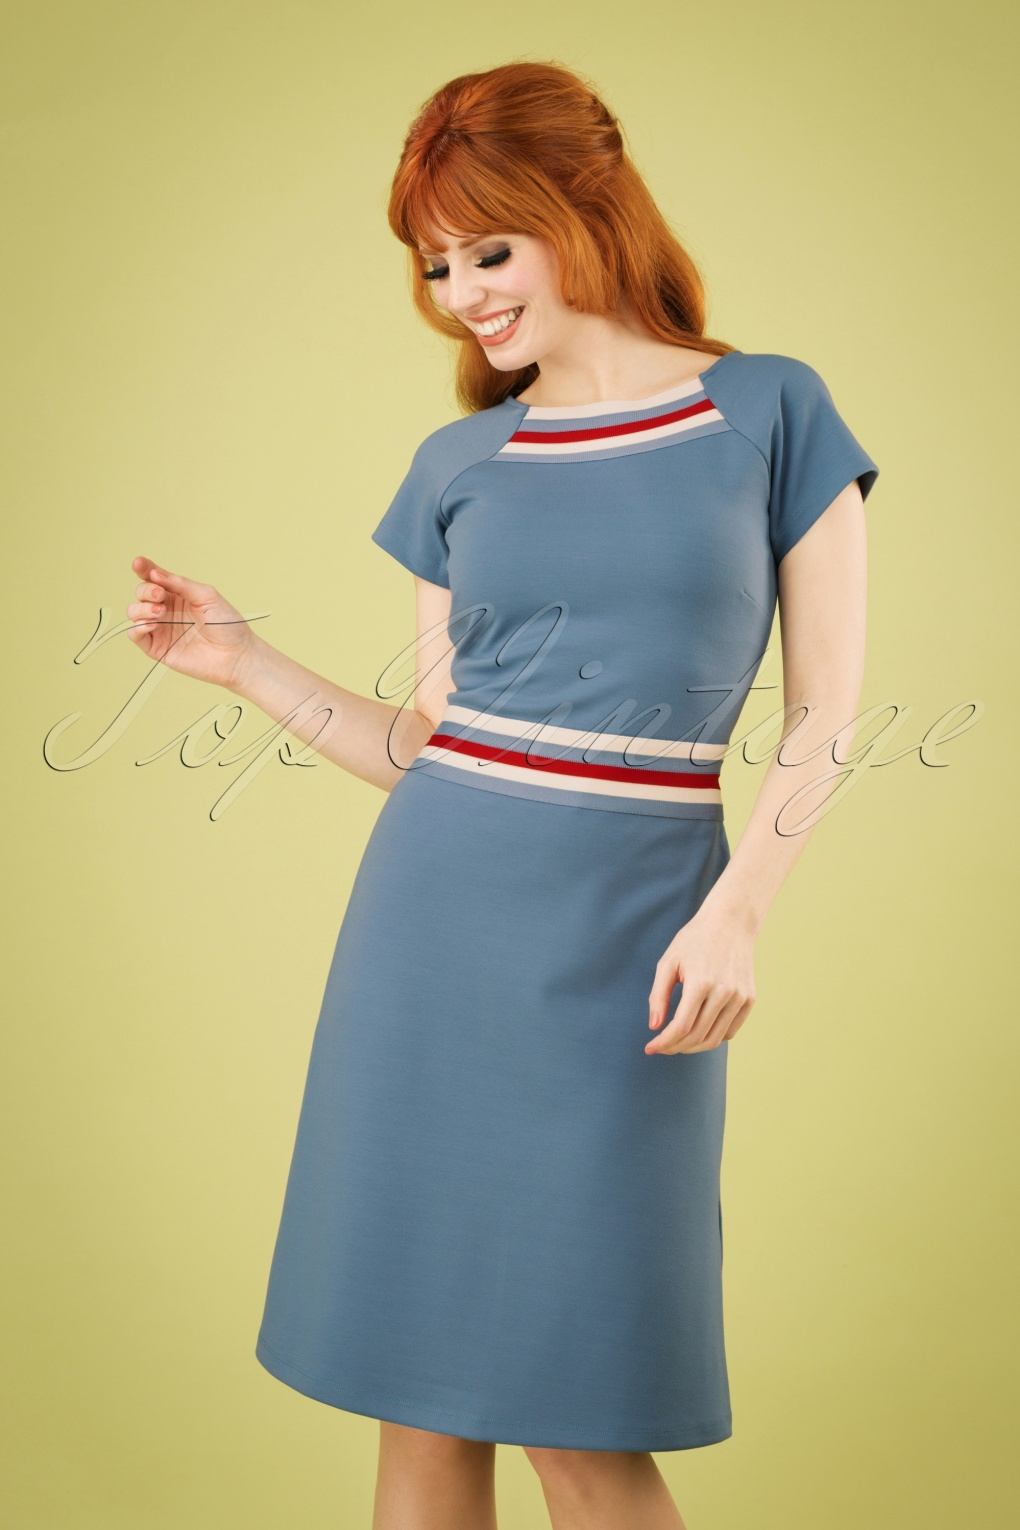 500 Vintage Style Dresses for Sale 60s A Trip To Rome Dress in Stone Blue �81.98 AT vintagedancer.com